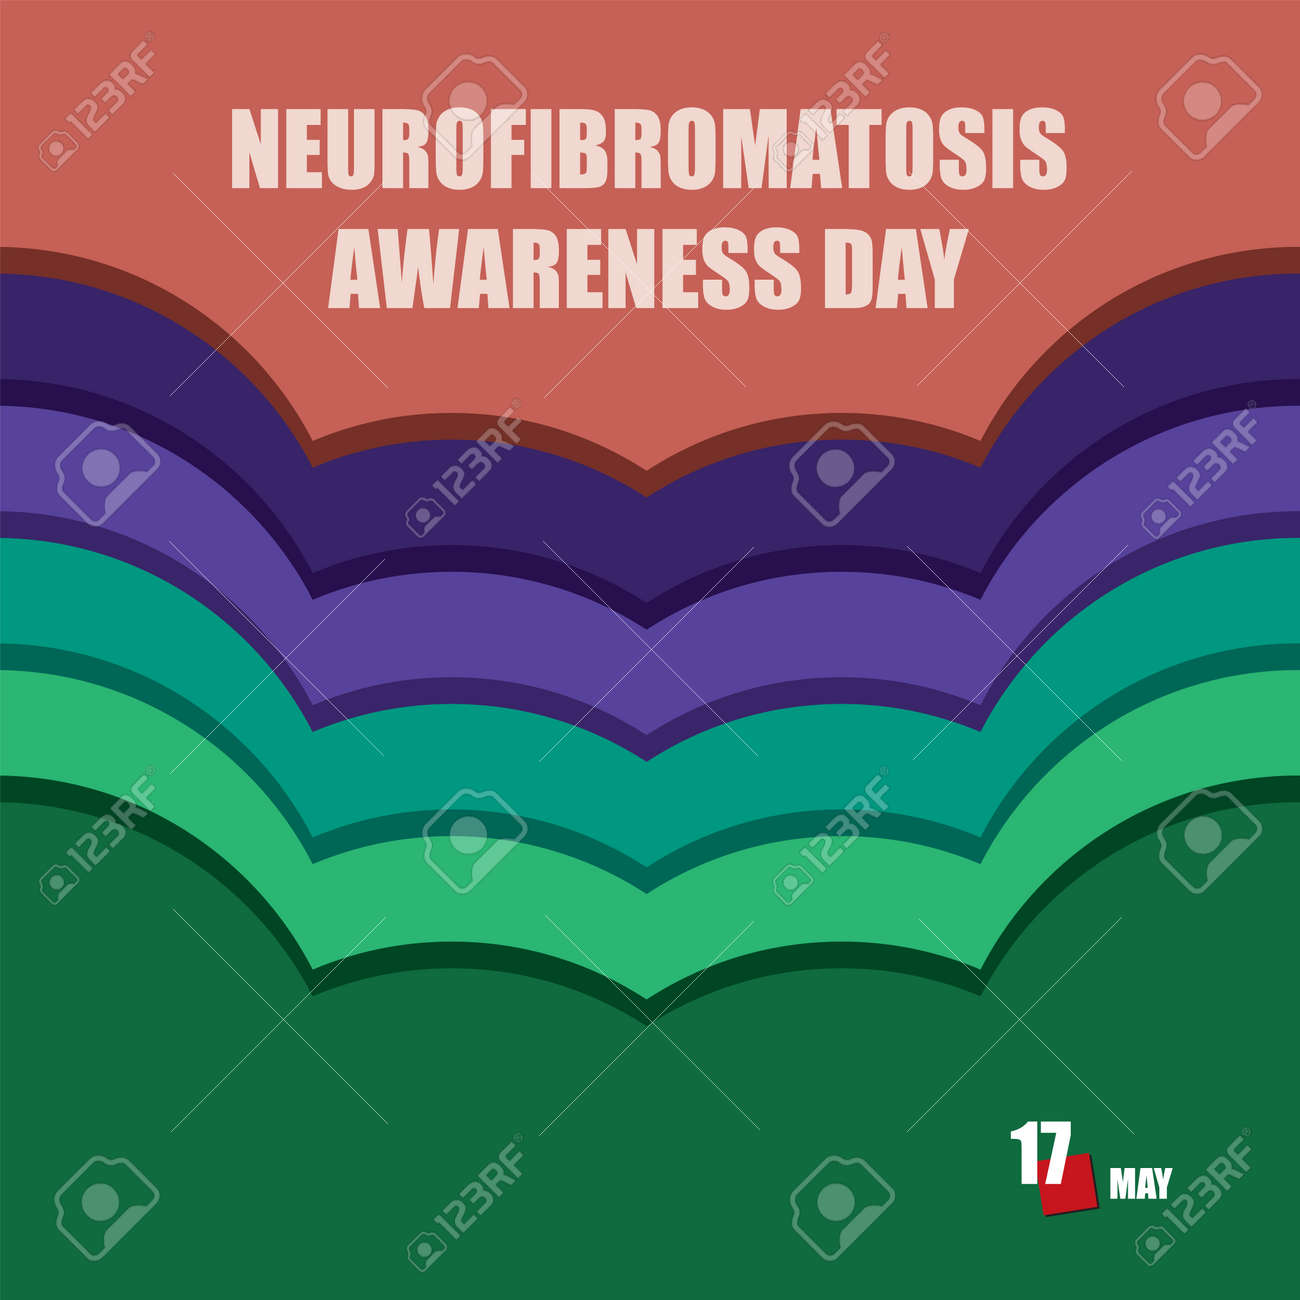 The calendar event is celebrated in may - Neurofibromatosis Awareness Day - 169442157